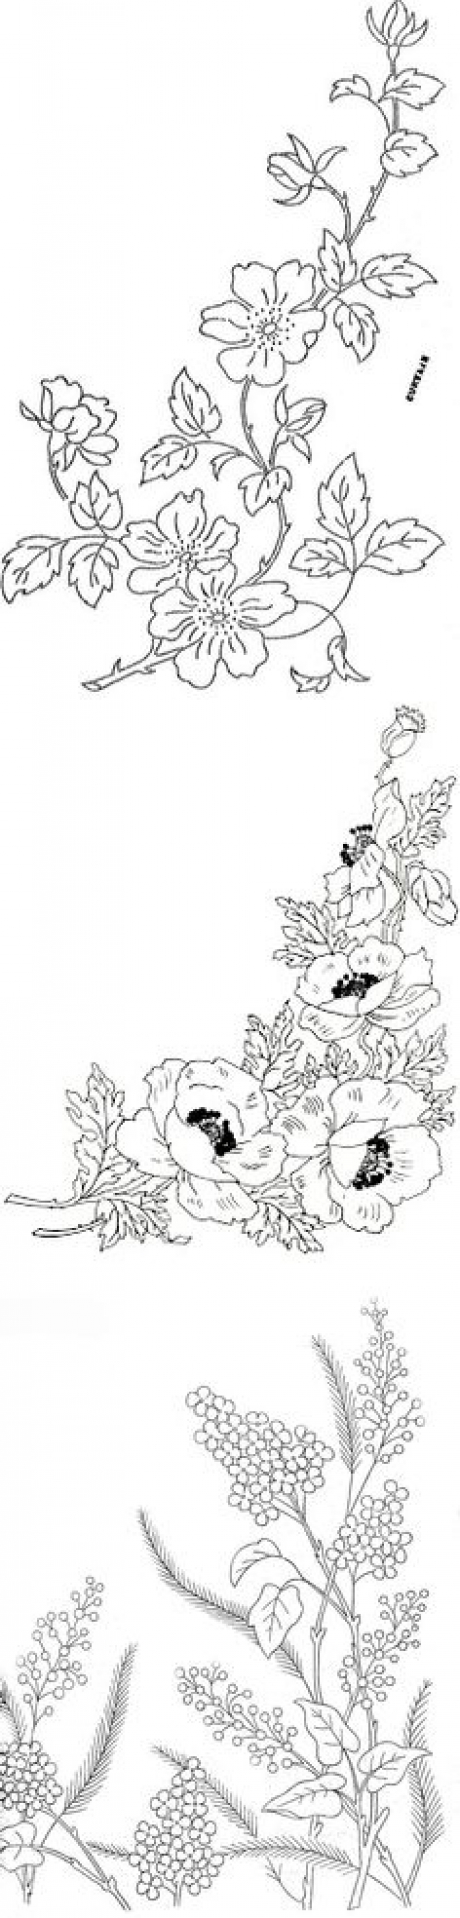 Free Flower Embroidery Patterns Embroidery Ideas